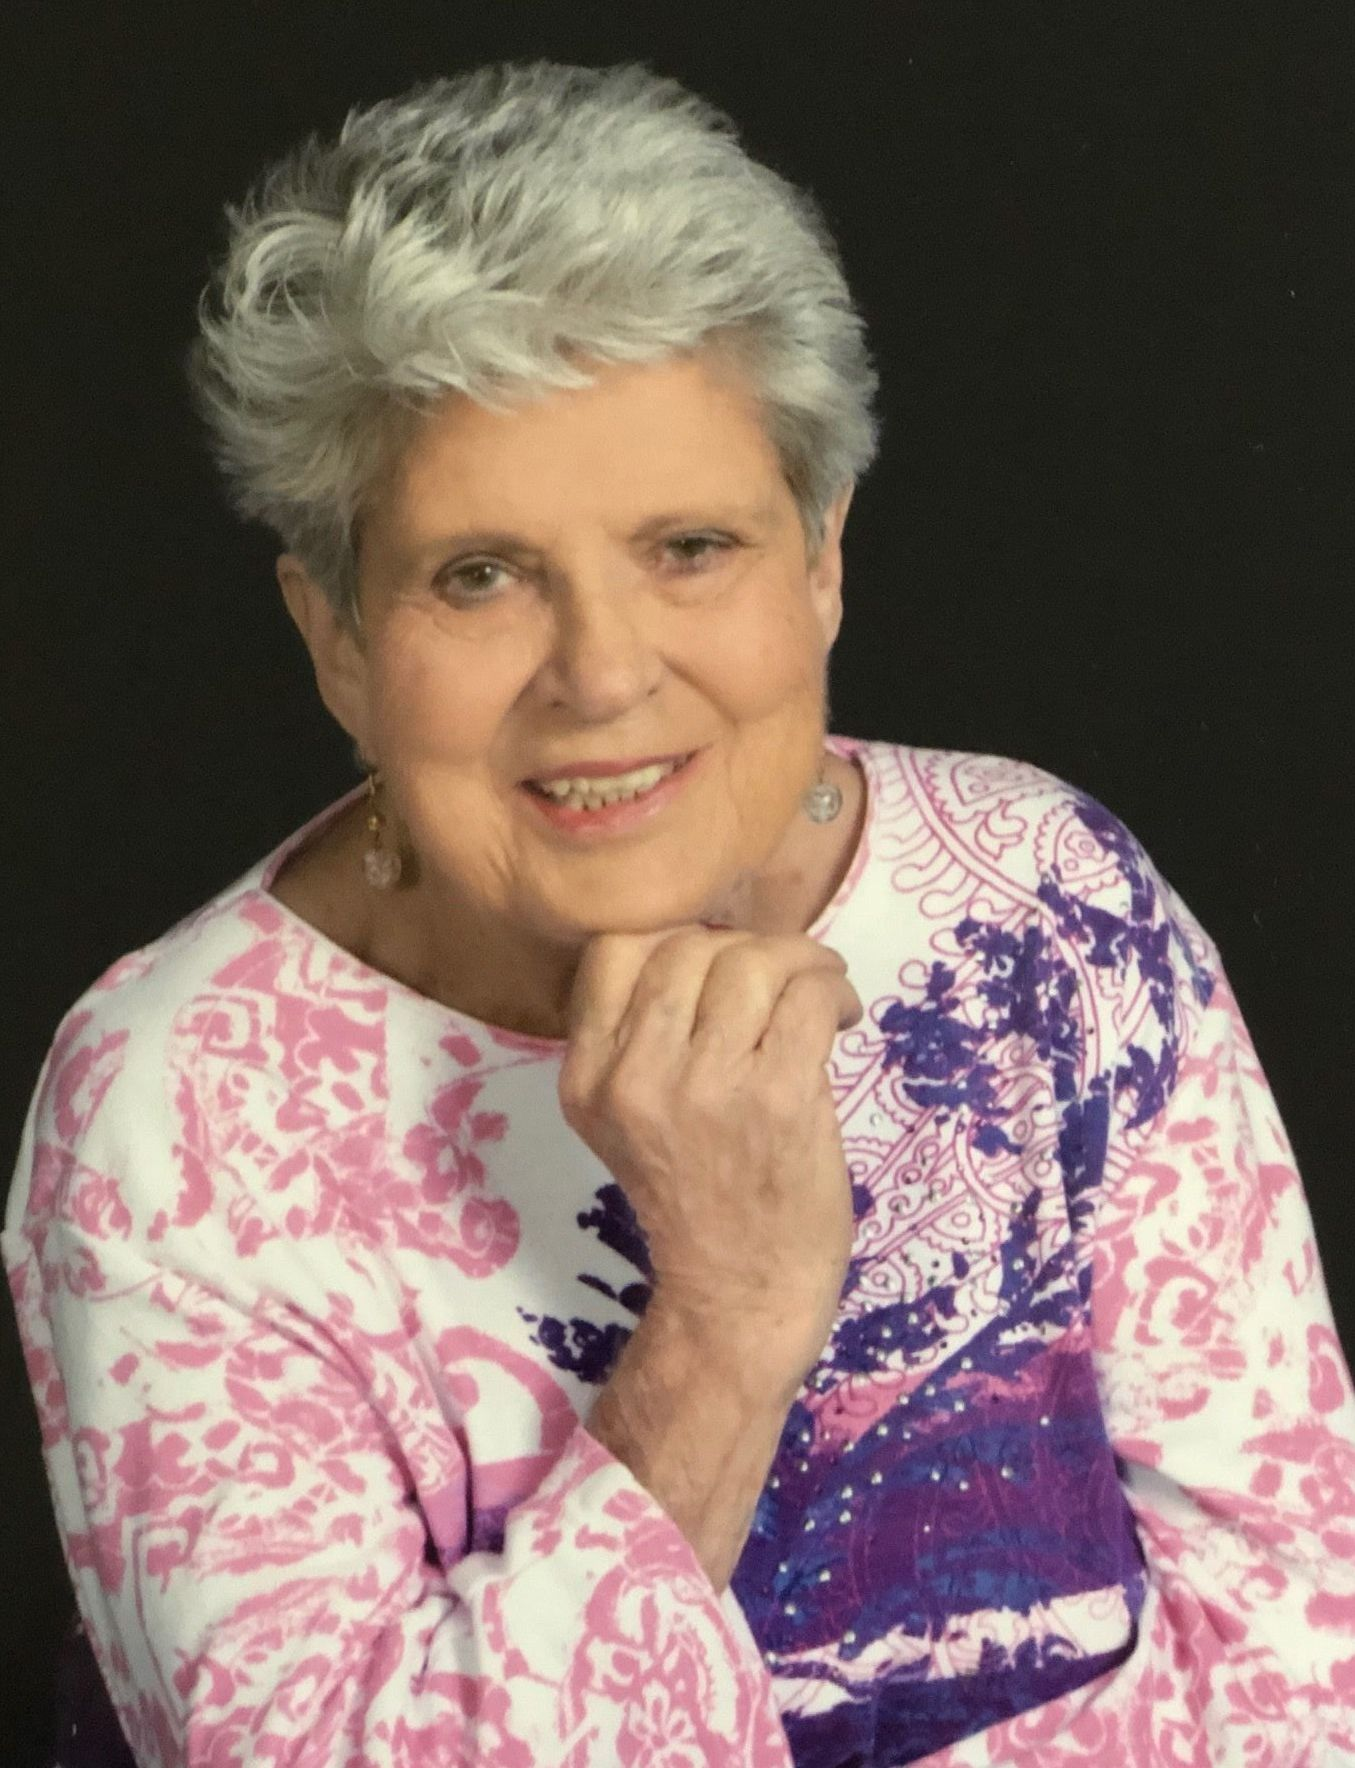 Obituary image of Betty Dean McDonald